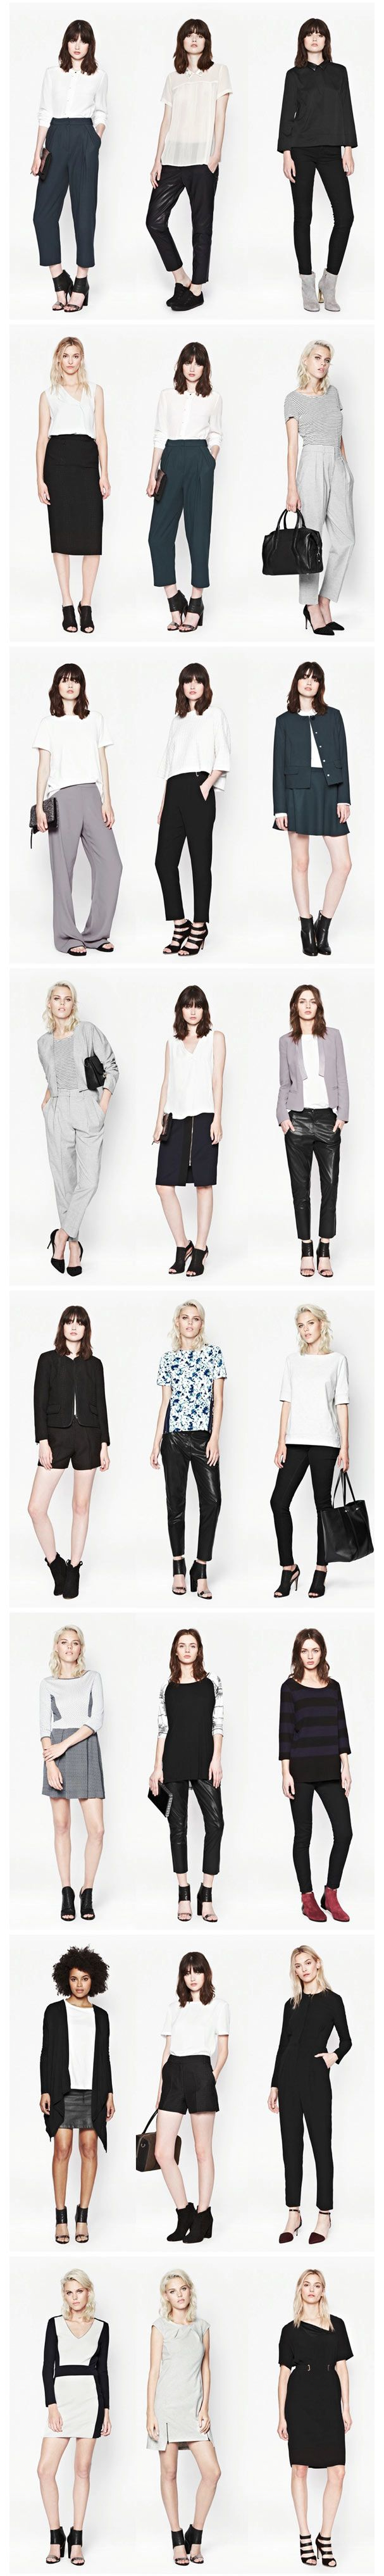 French Connection Women's Workwear